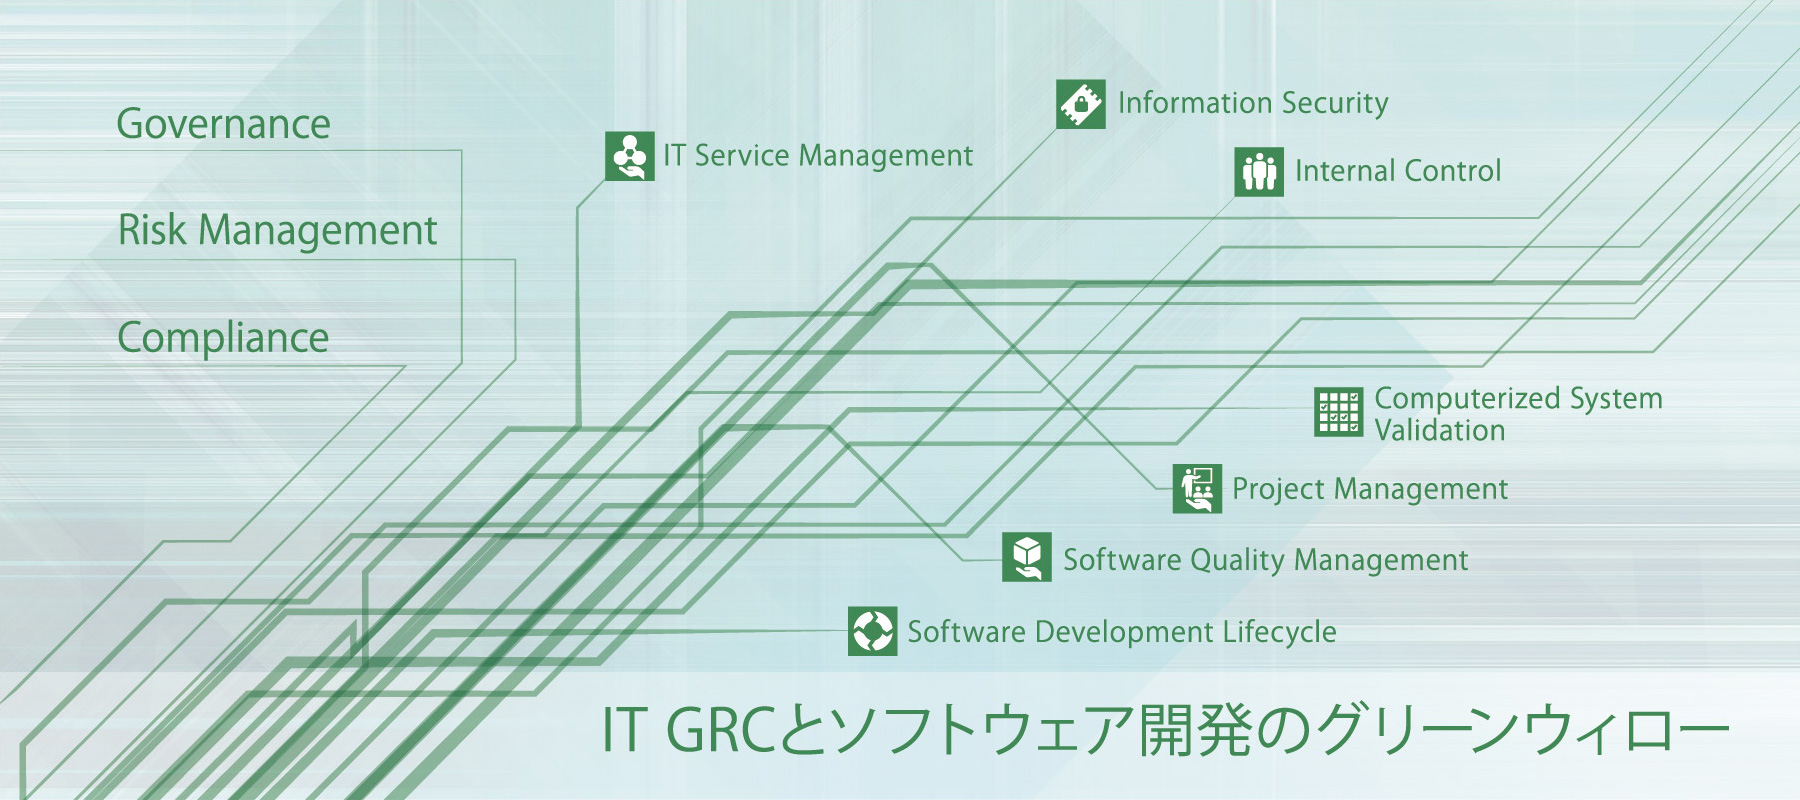 IT GRC & Software Development